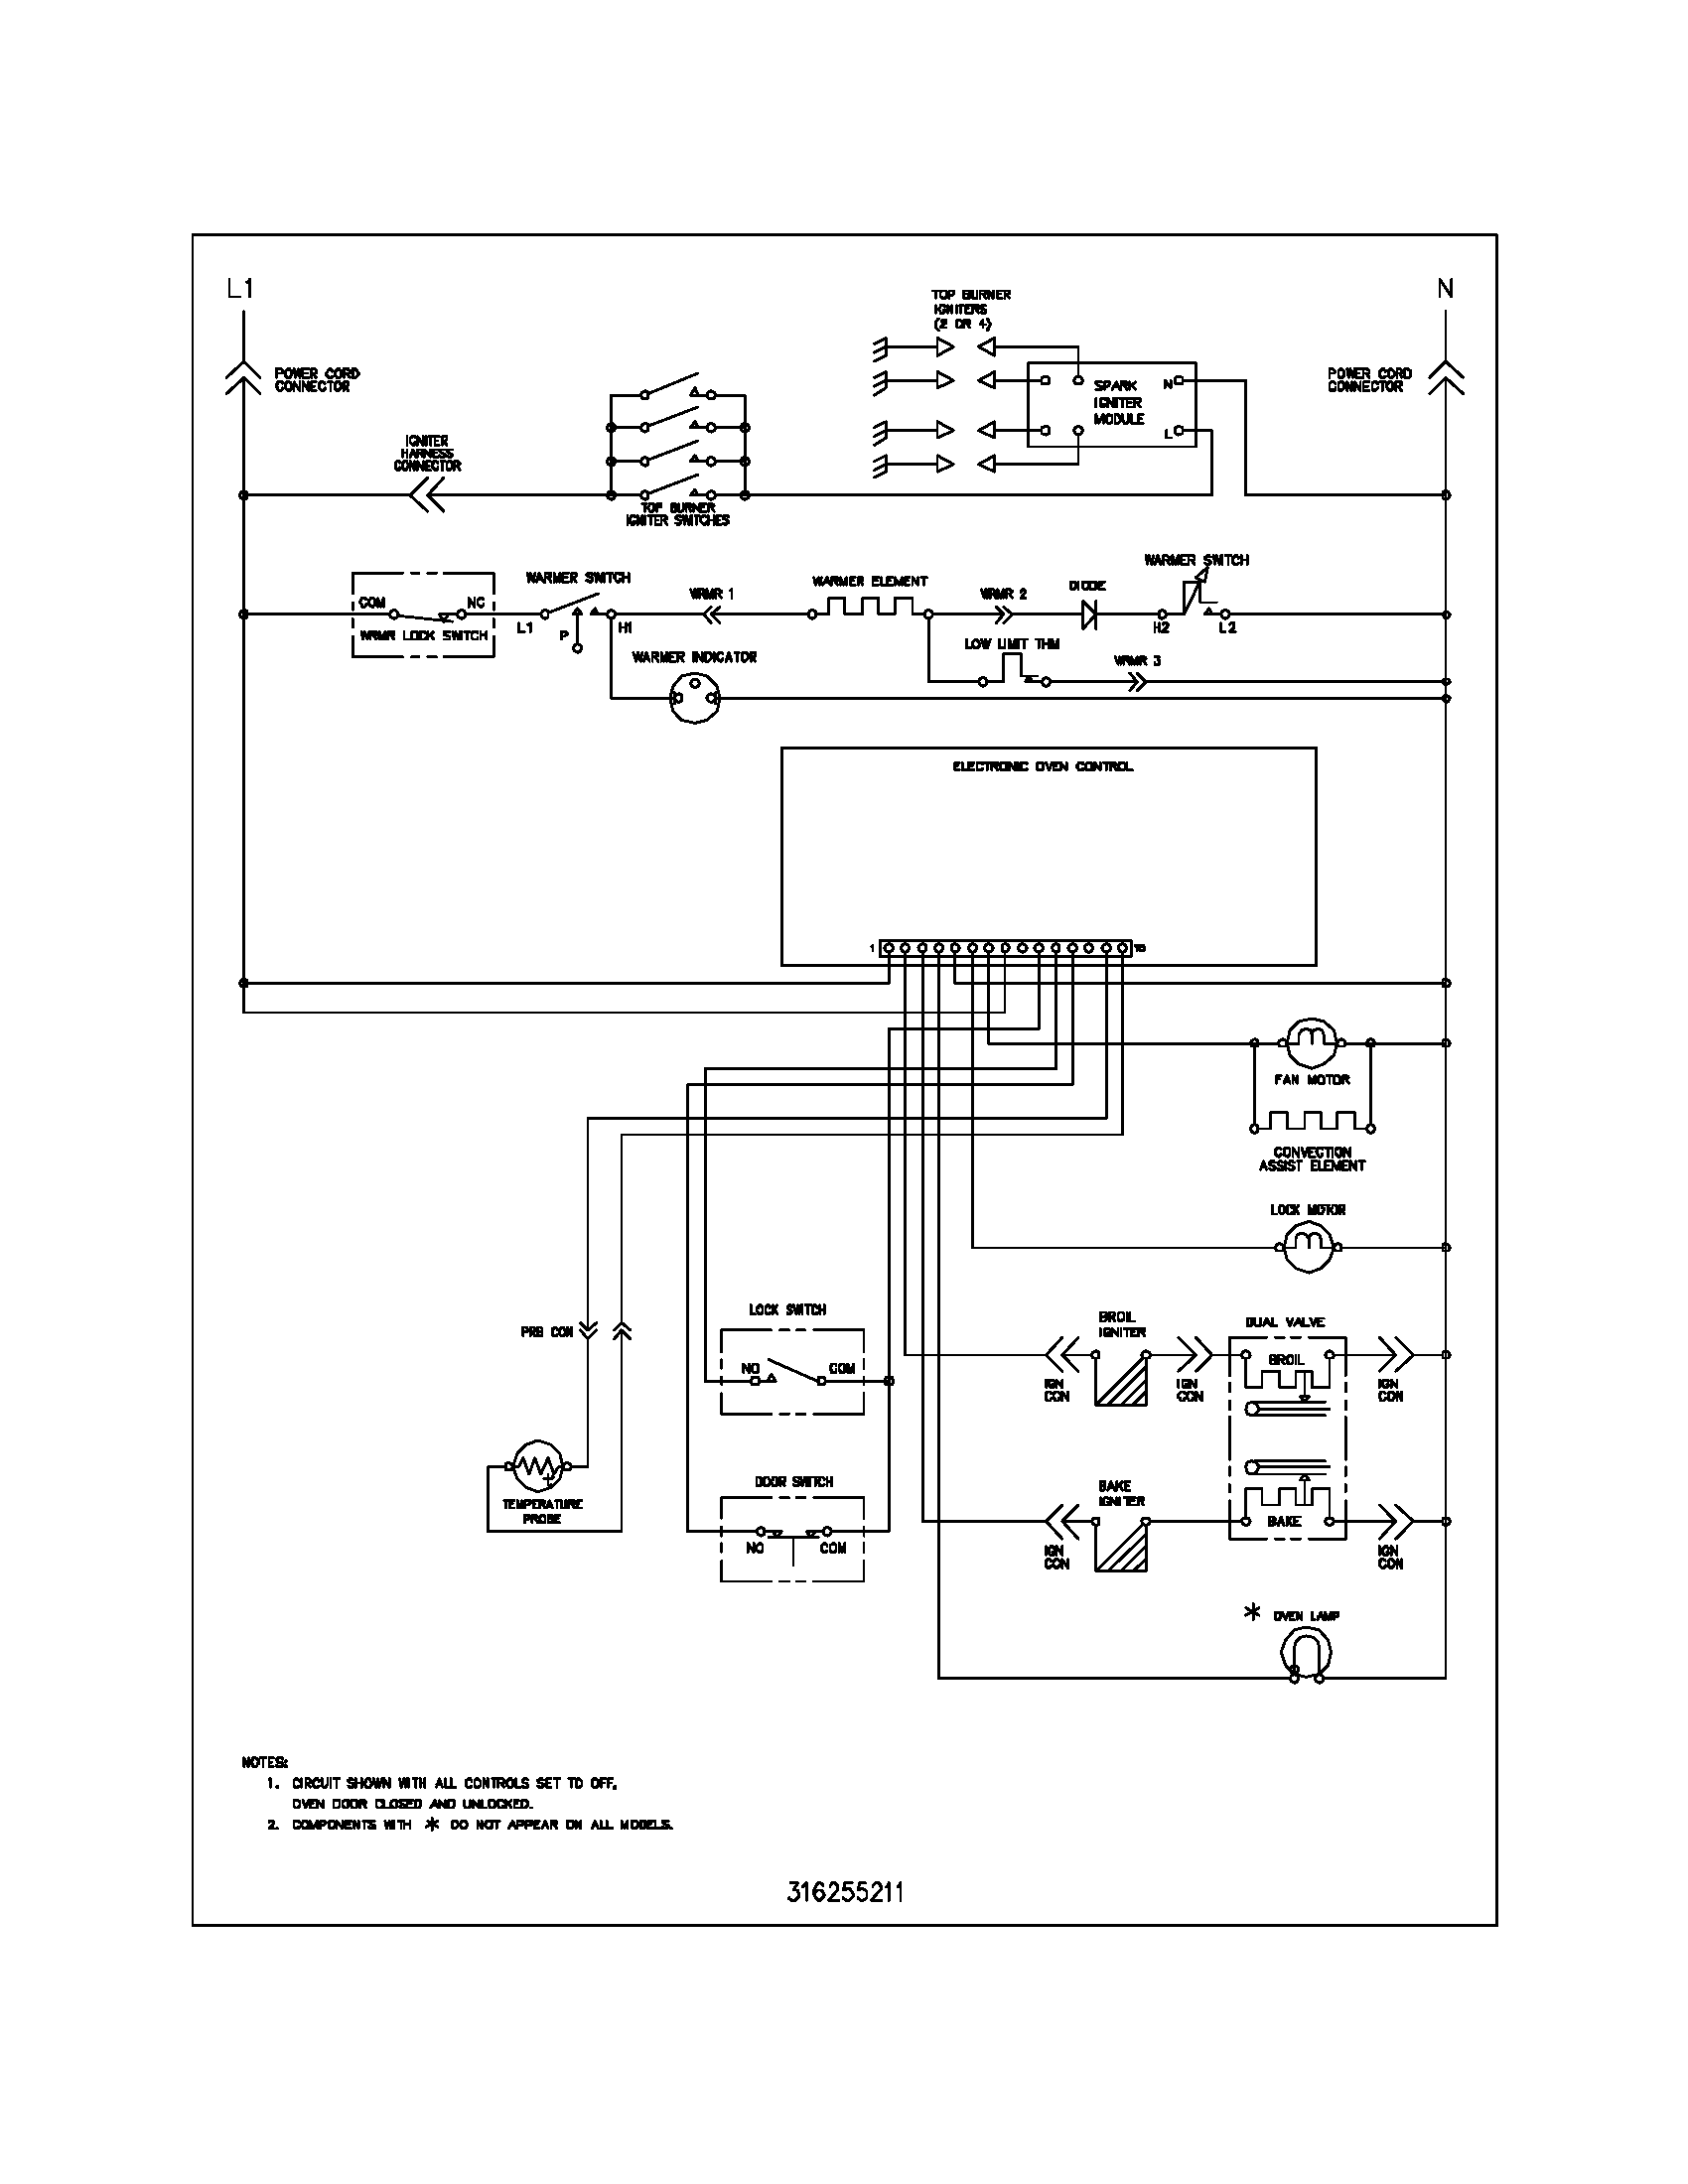 frigidaire oven wiring diagram model ples399ecf, frigidaire dryer parts timer knob, frigidaire electric oven parts, frigidaire oven parts diagram, dishwasher diagram, ge gas range parts diagram, frigidaire dryer parts diagram, frigidaire electric oven sensor, frigidaire gallery dryer diagram, timer control circuit diagram, kitchenaid superba ice maker diagram, frigidaire electric dryer diagram, frigidaire oven model numbers, on frigidaire electric oven wiring diagram